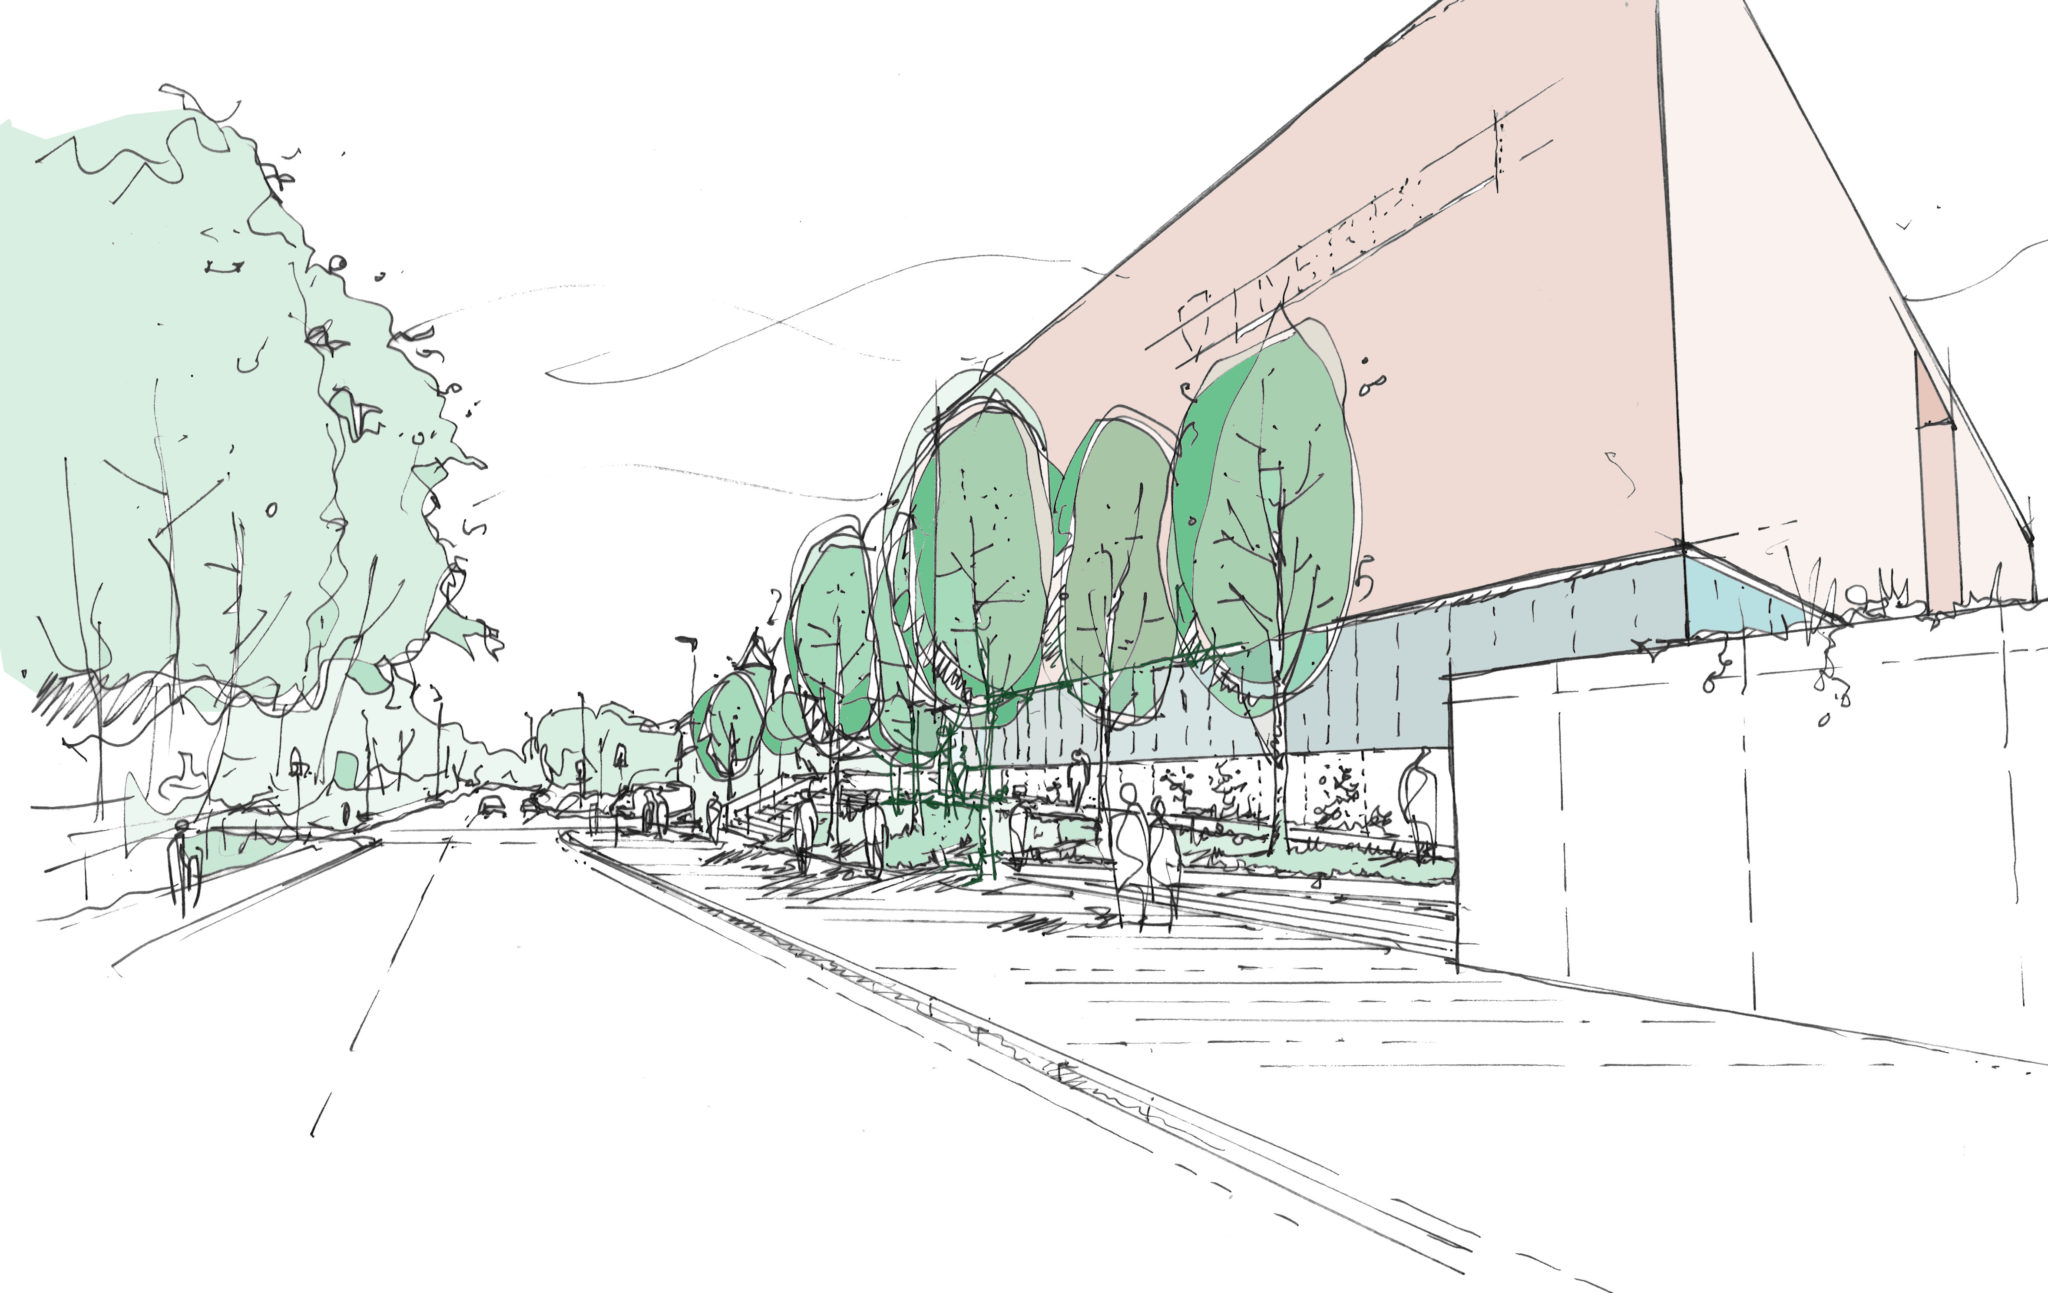 University of Liverpool Arts & Humanities Centre - Oxford Street sketch